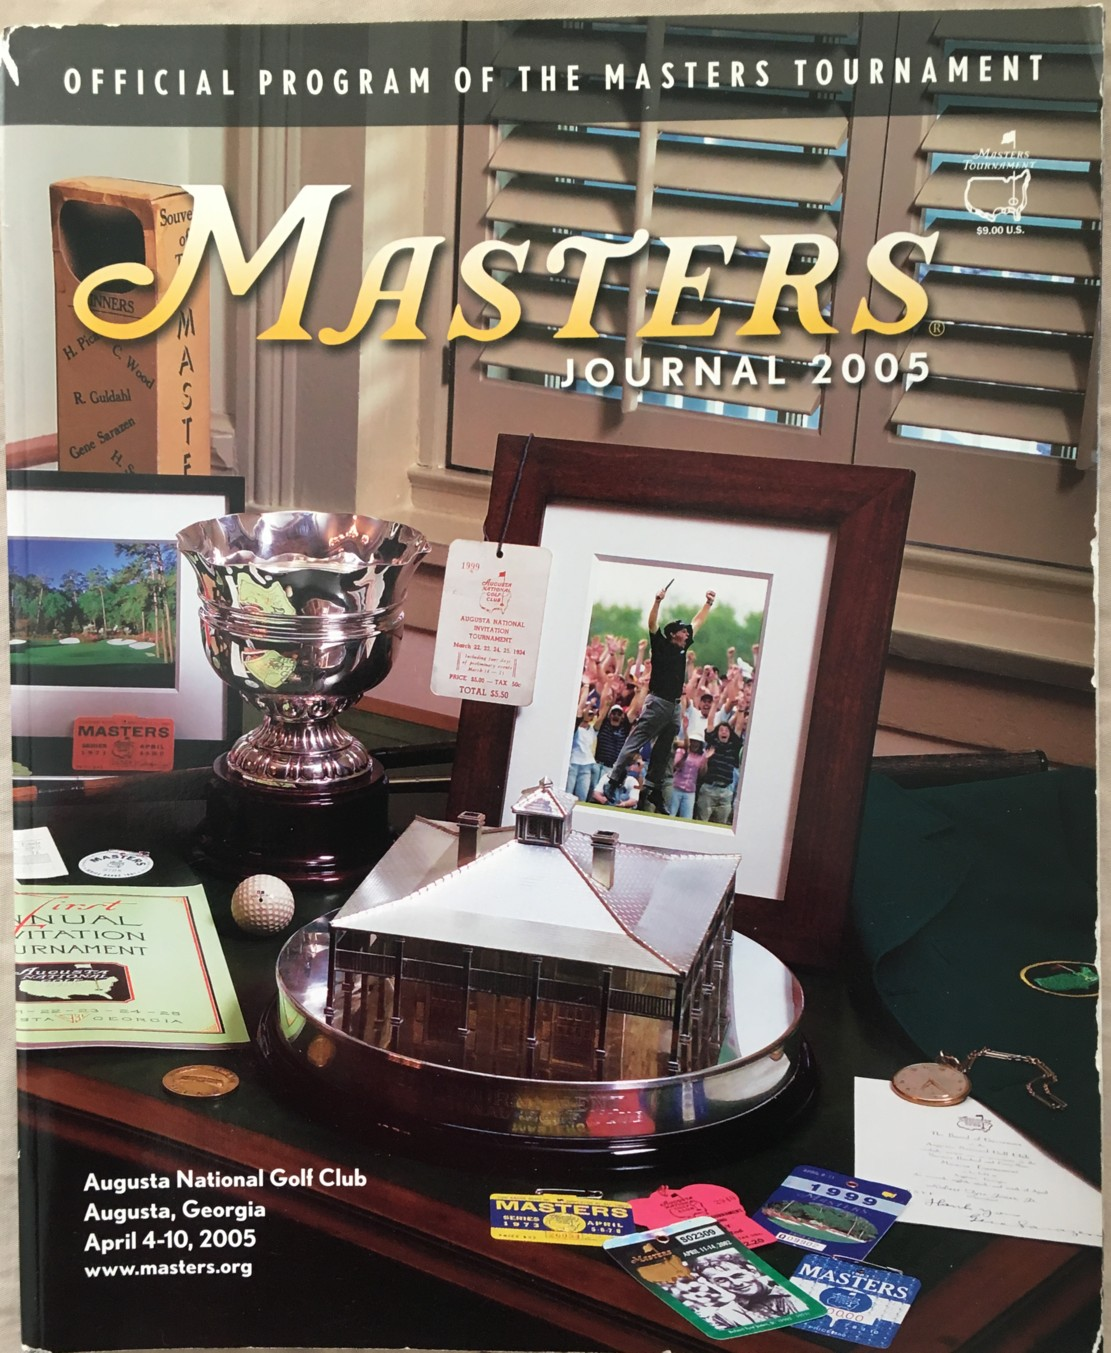 Marvelous 2005 Masters Journal Golf Tournament Program Tiger Woods Wins 4Th Green Jacket Gmtry Best Dining Table And Chair Ideas Images Gmtryco